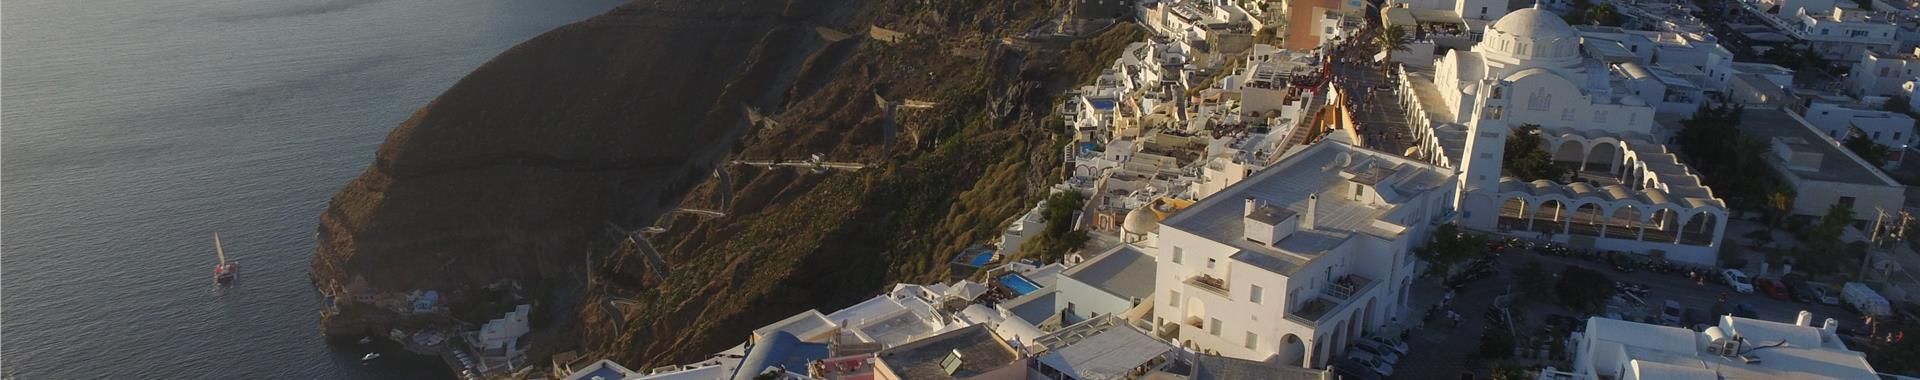 Fira Fira Hotels in Santorini island, Greece